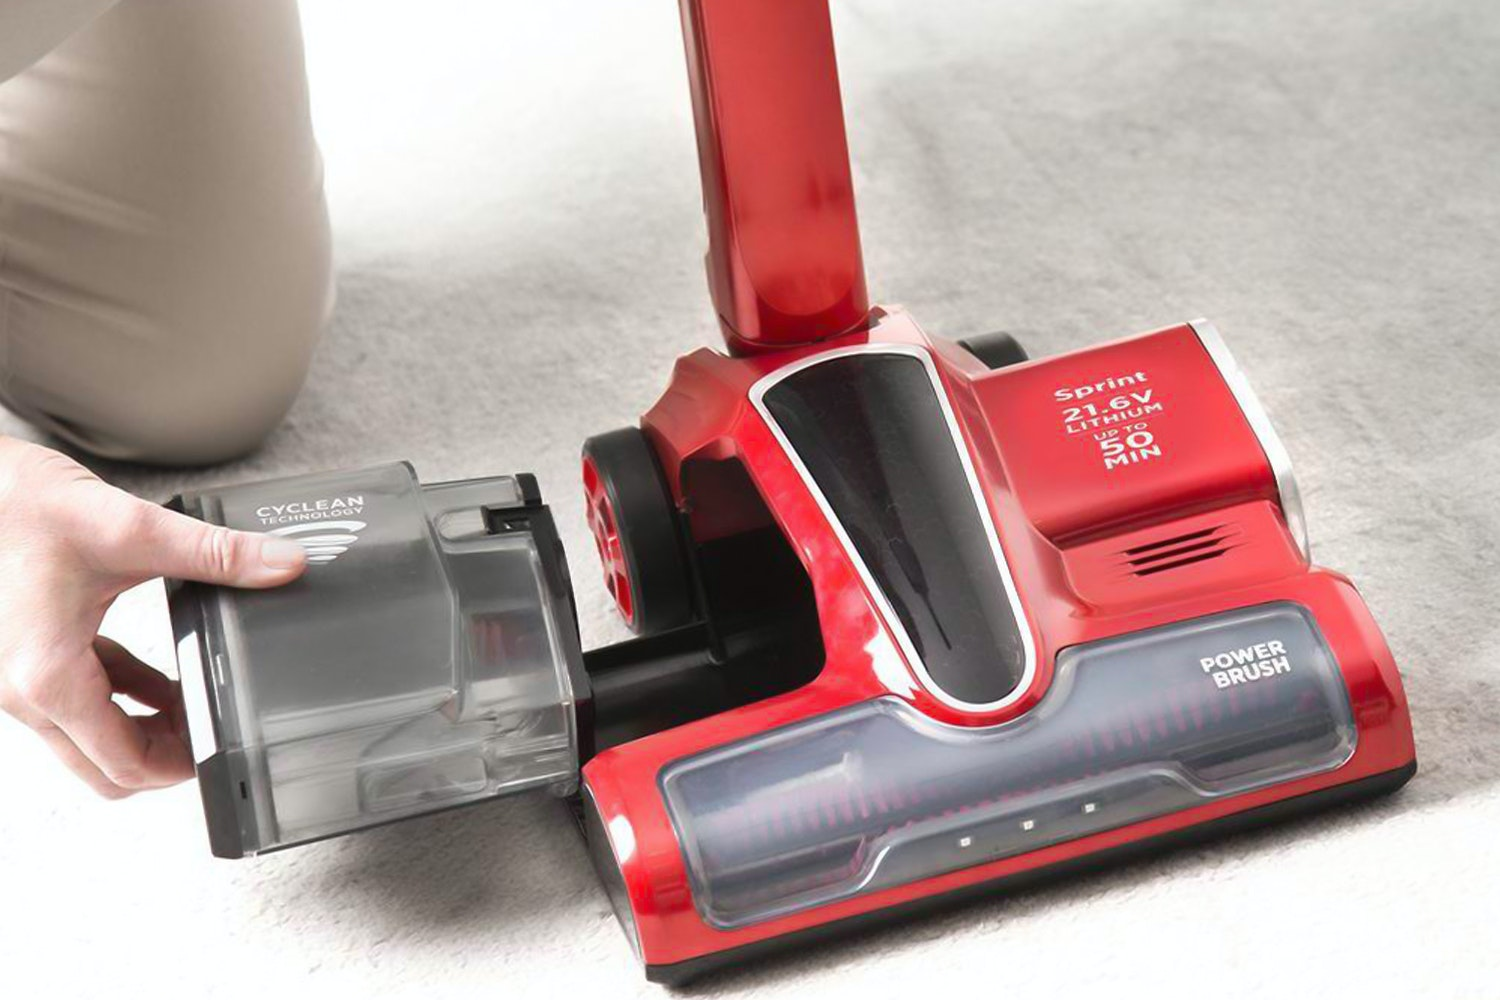 Hoover Sprint Cordless Stick Vacuum Cleaner Red Ireland